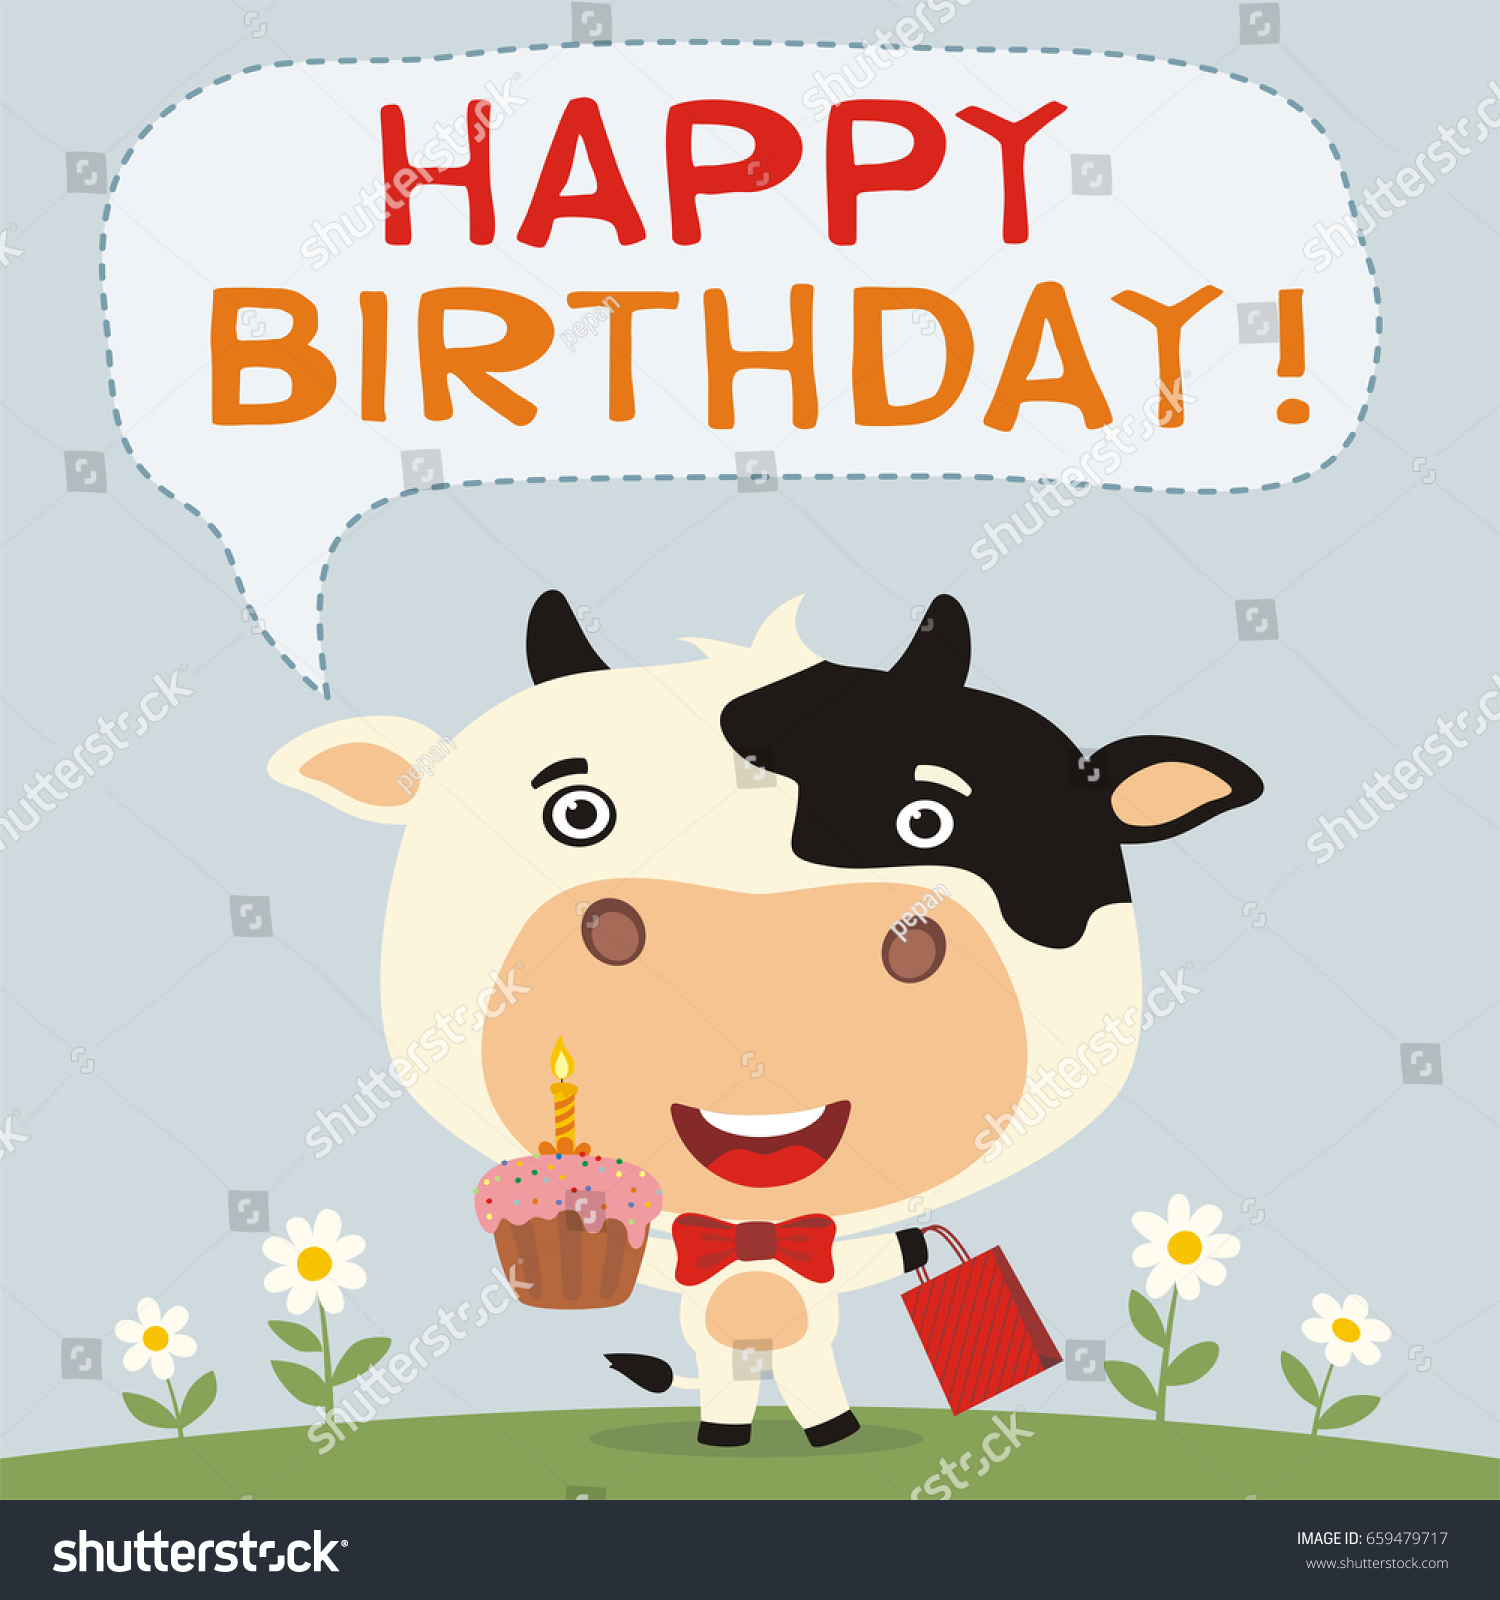 Happy Birthday Funny Cow Cake Gift Stock Vector Royalty Free